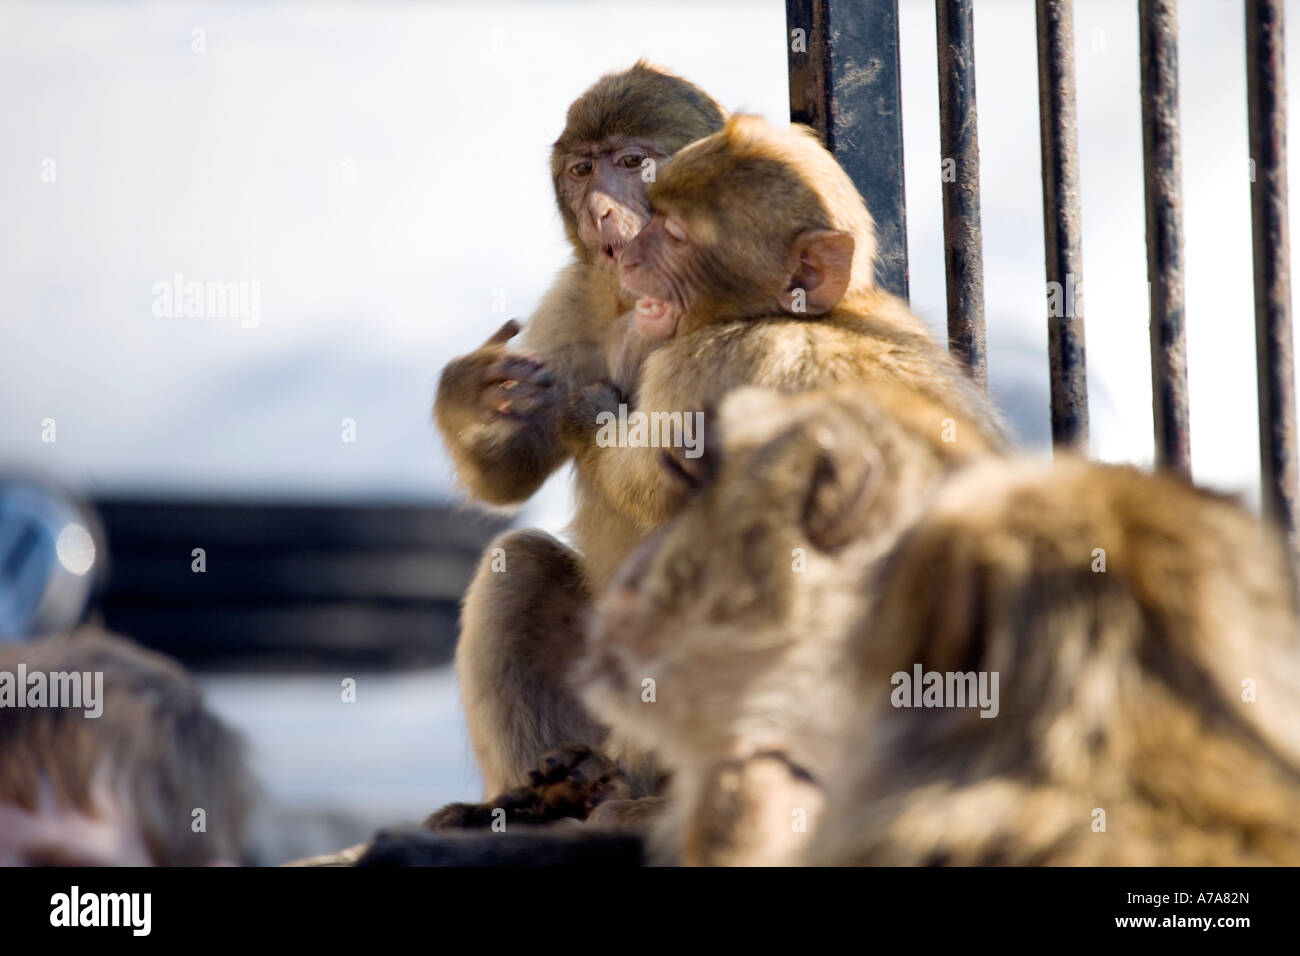 Young Gibraltar Apes play fighting - Stock Image